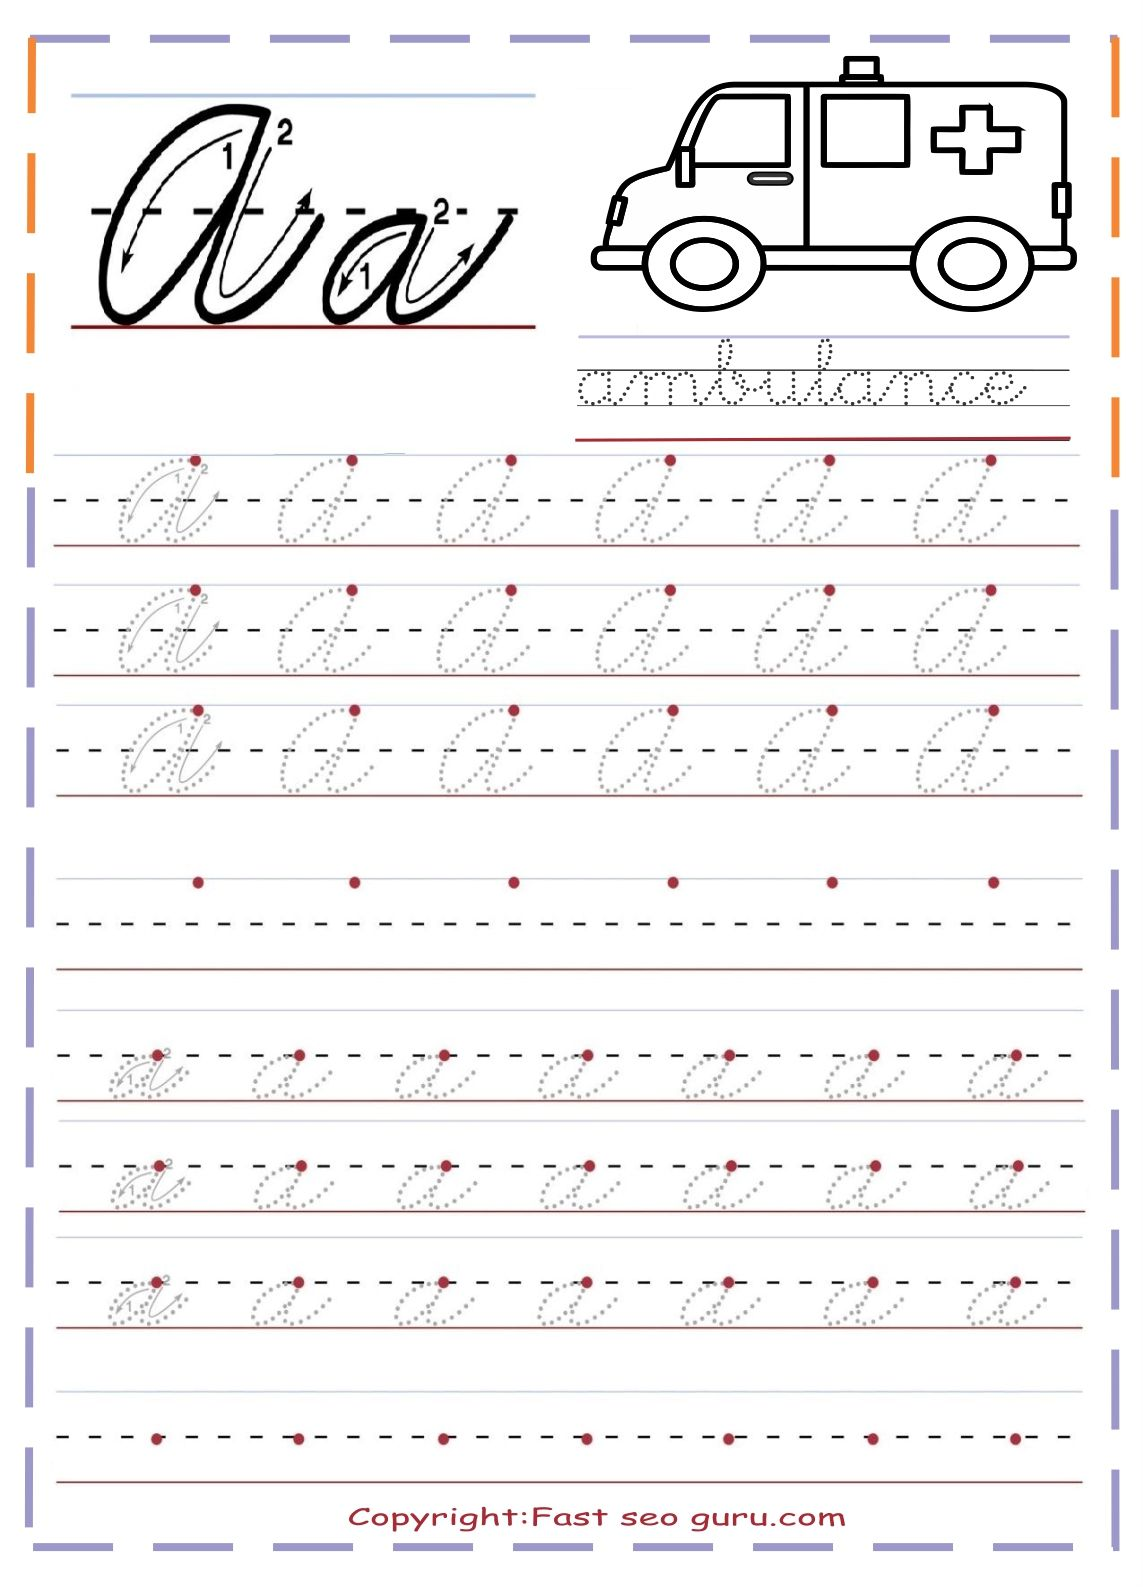 Printable Cursive Handwriting Practice Sheets Letter A In